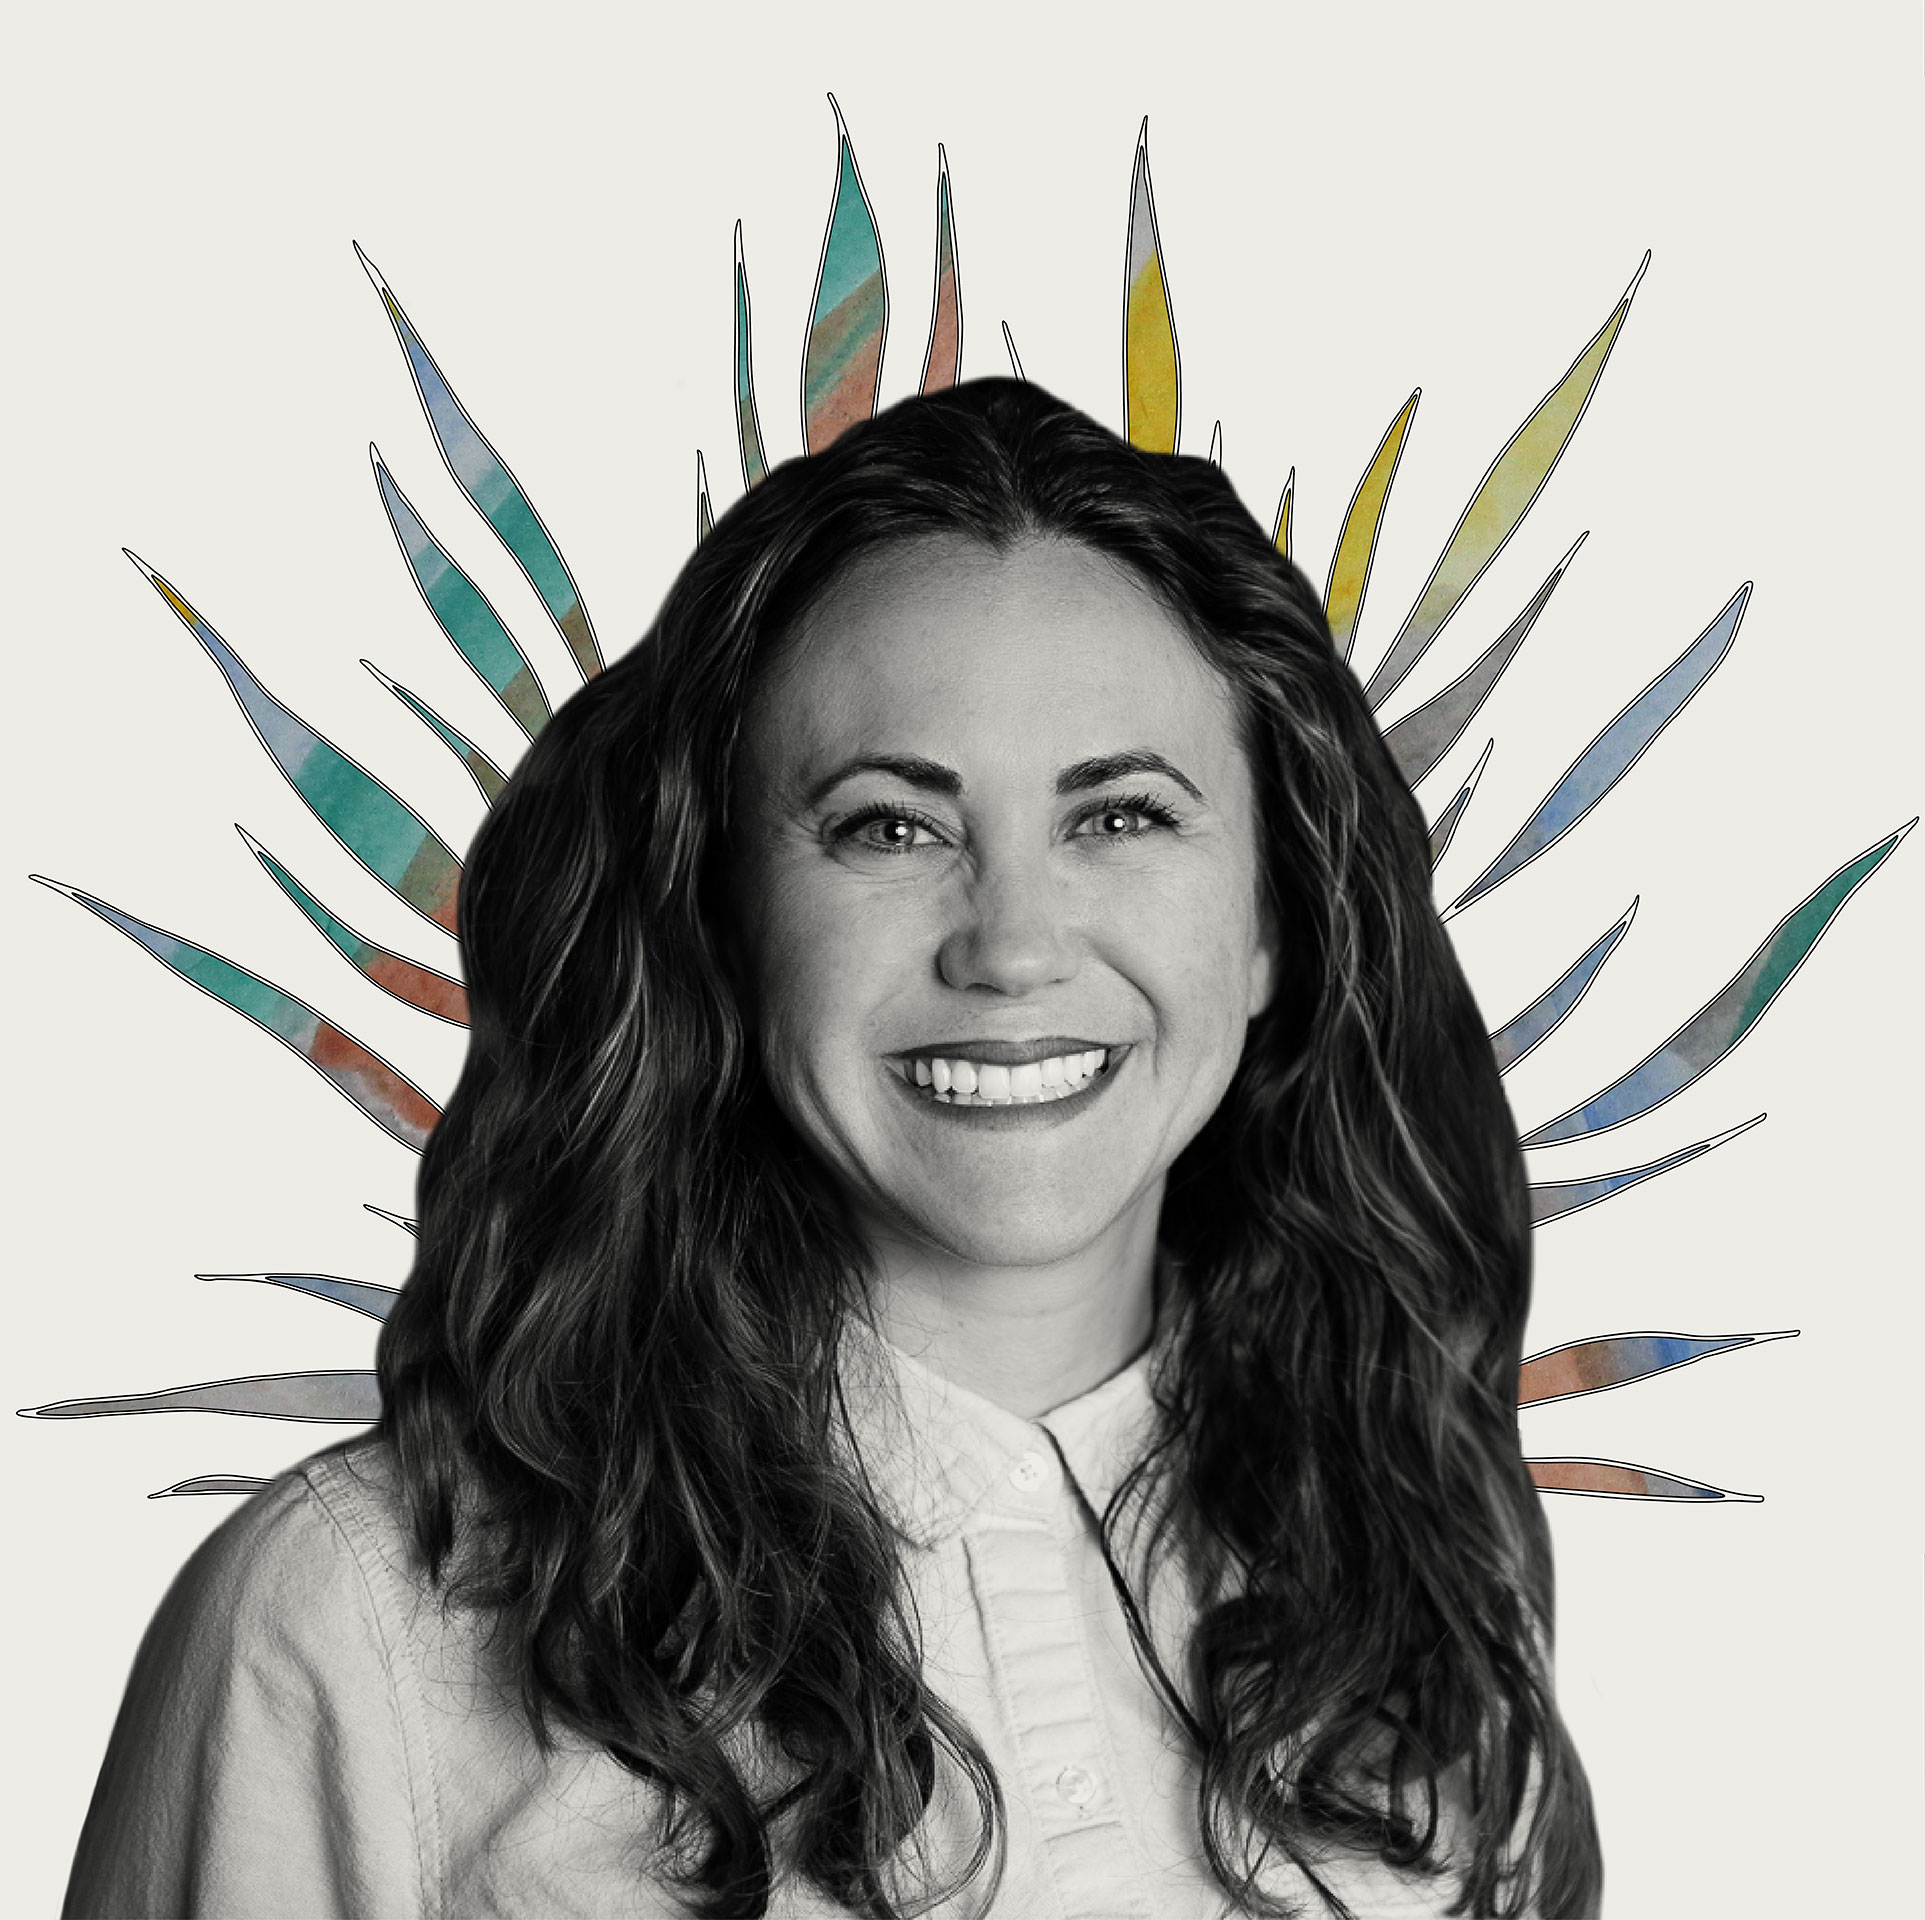 Green Thumb's Jennifer Dooley on Innovation in Cannabis and the LPP Collab 'Waiting to Breathe'